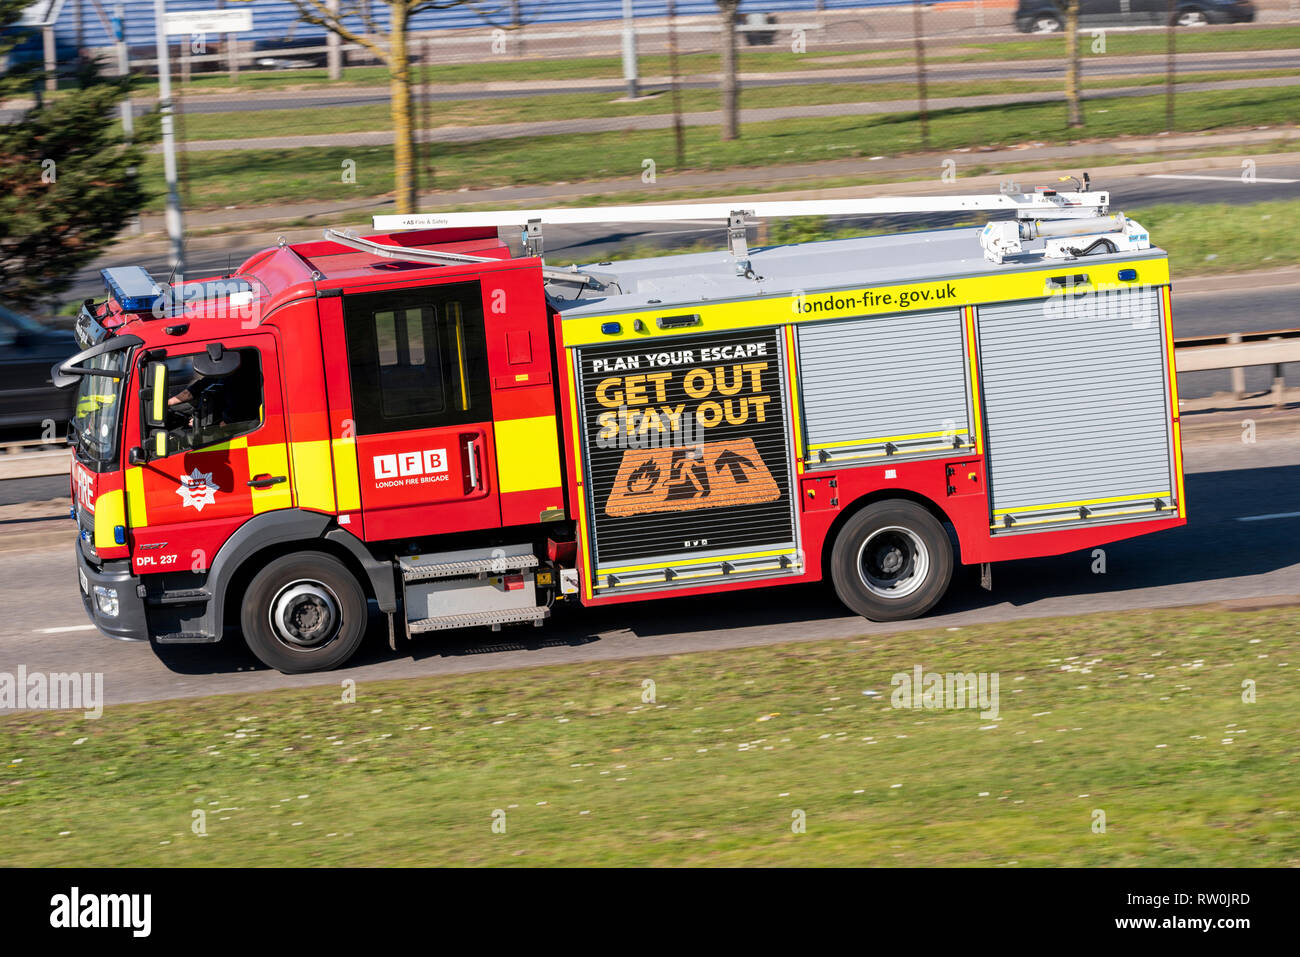 London Fire Brigade fire engine, fire tender driving on the road. Mercedes Benz Atego 1327. Plan your escape, get out stay out - Stock Image